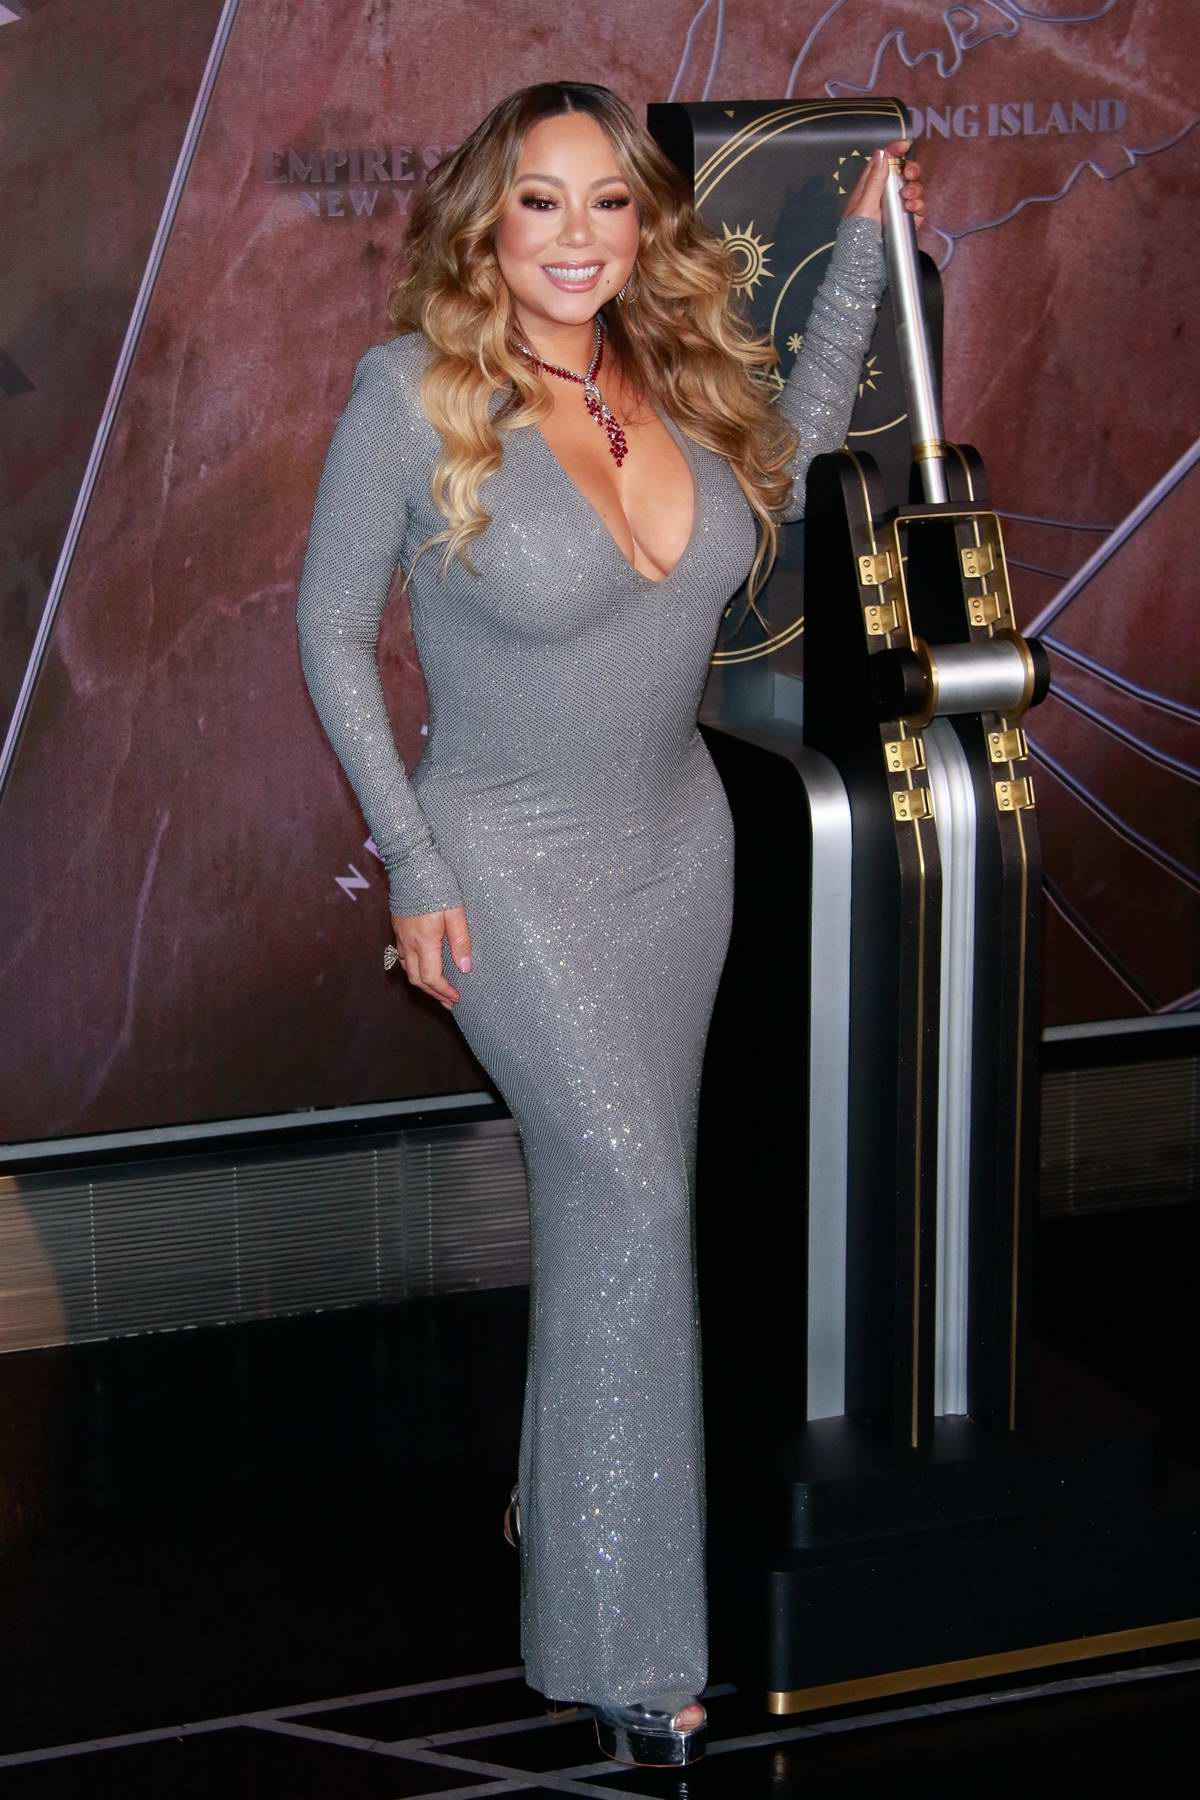 Mariah Carey lights Empire State Building in New York City